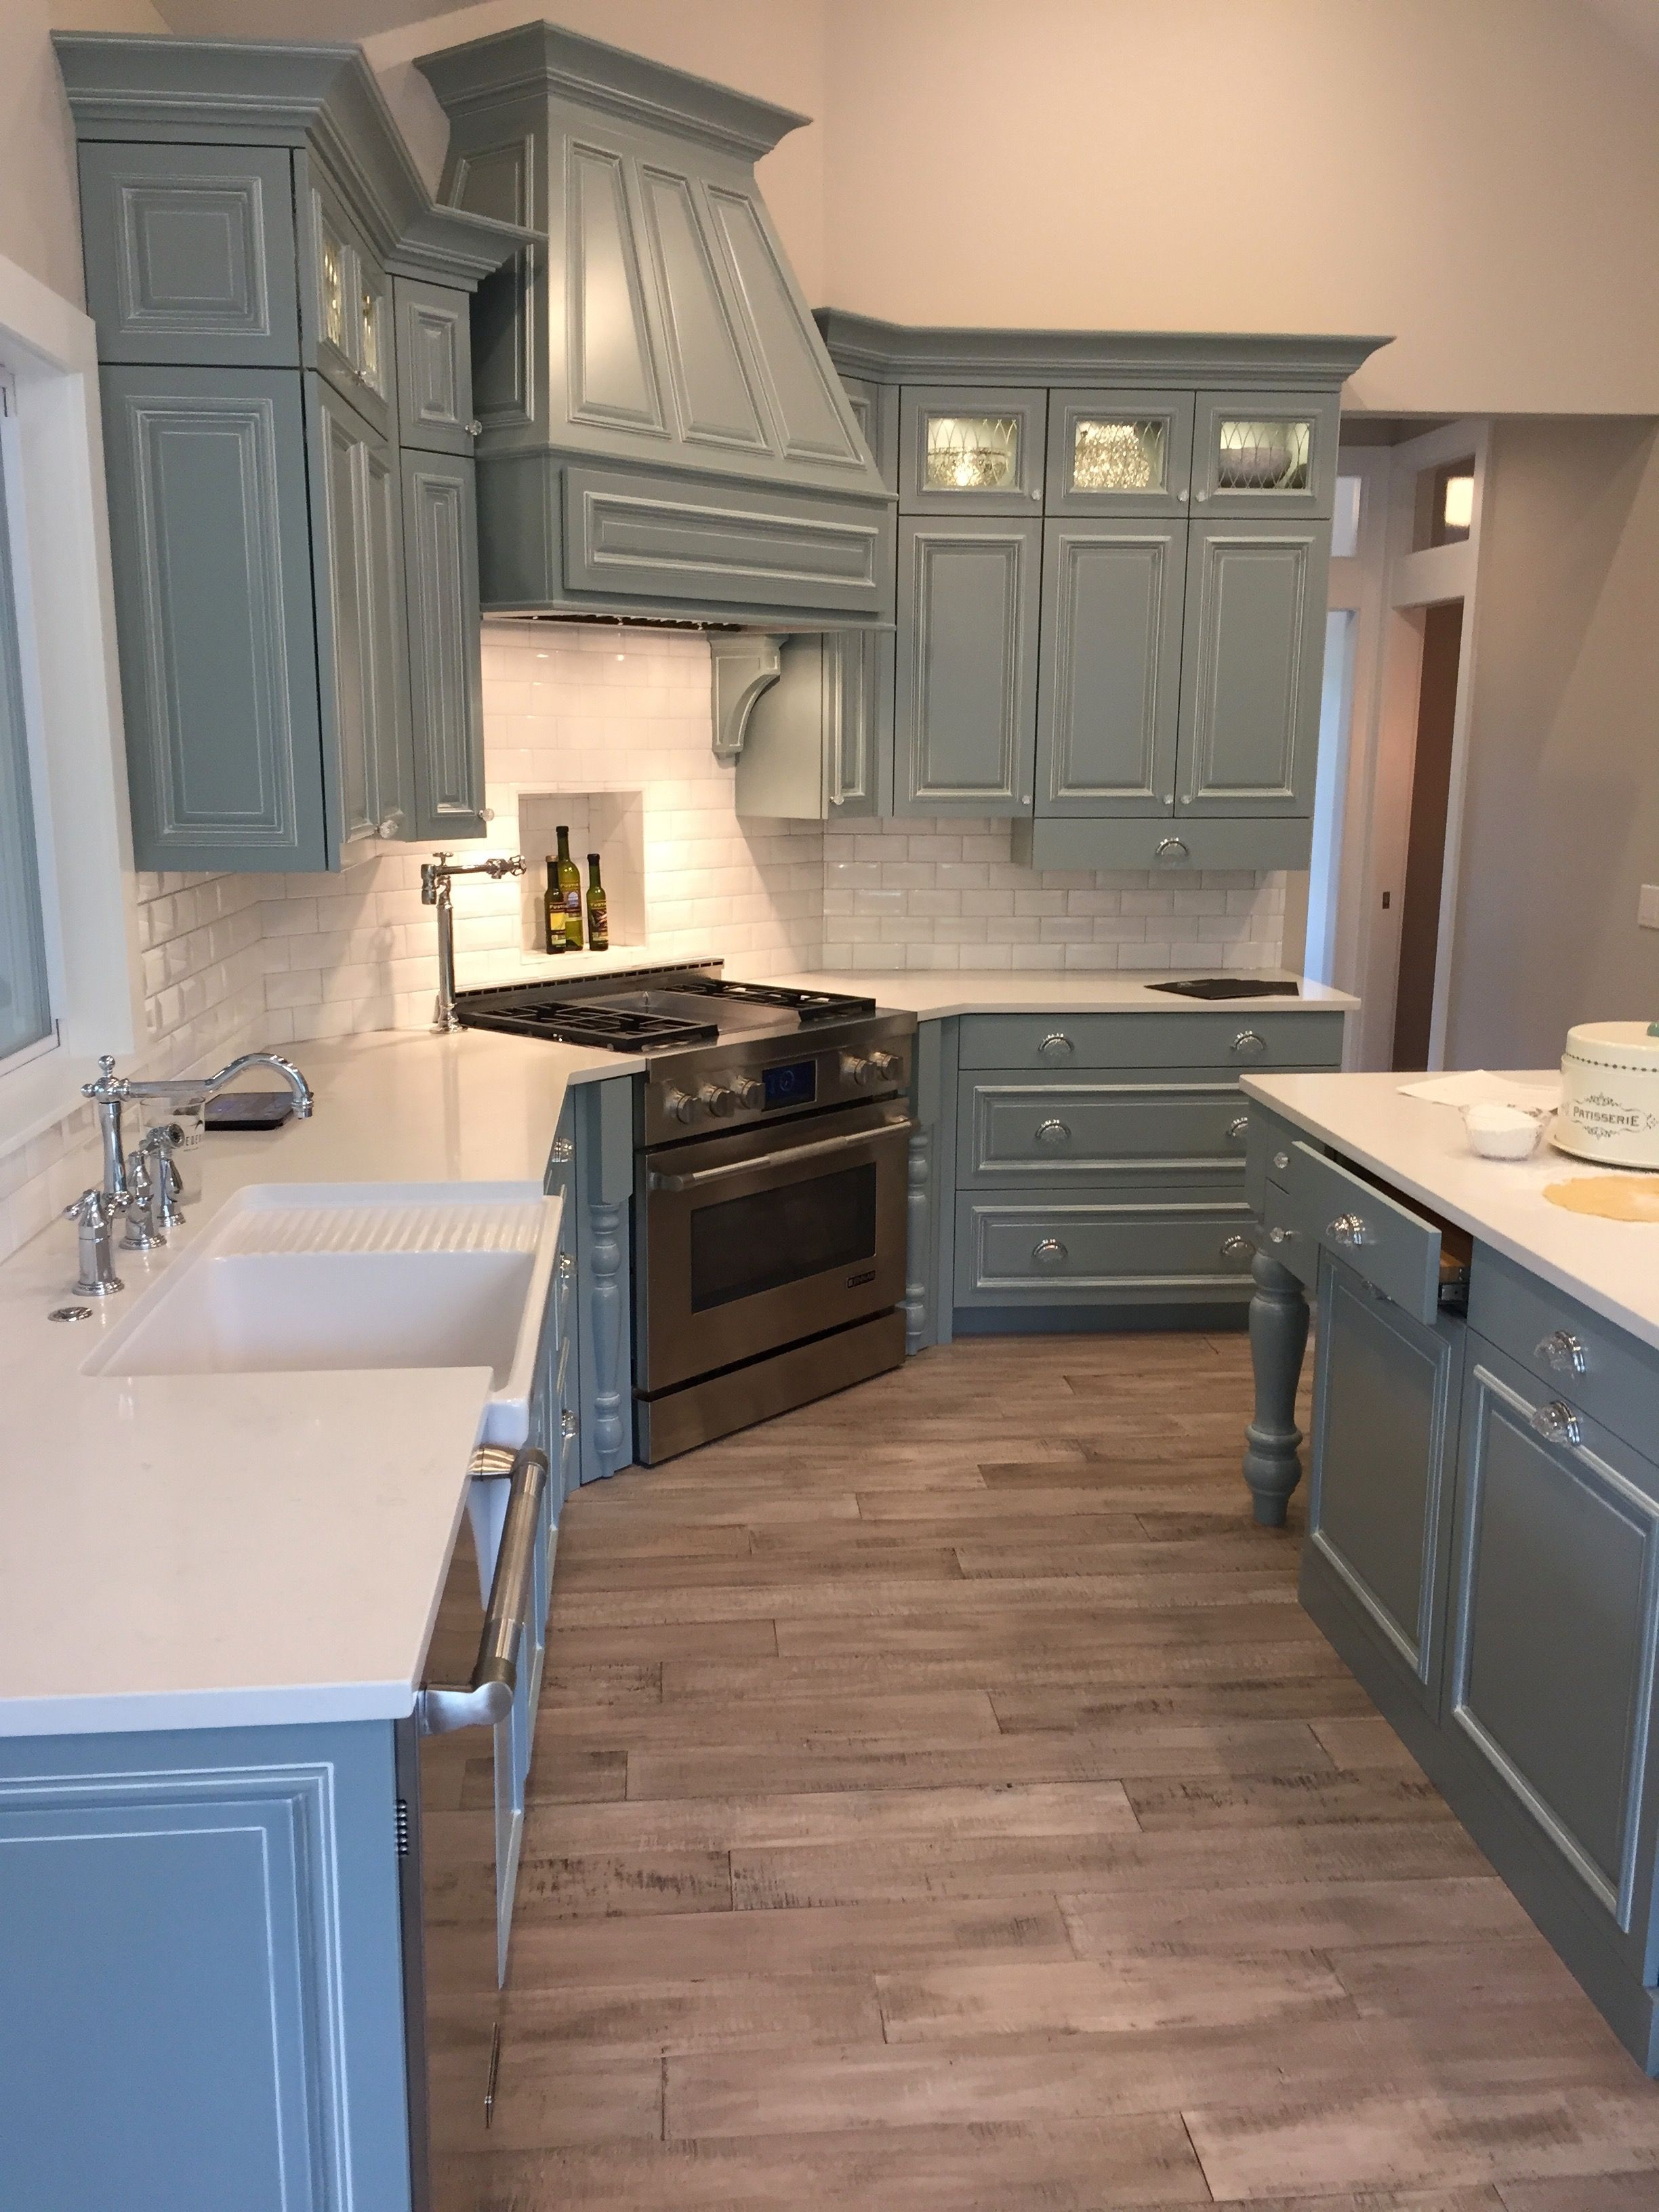 Painted Custom Cabinetry In Benjamin Moore Mount Saint Anne 1565 Benjamin Moore Kitchen Home Kitchens Painting Kitchen Cabinets